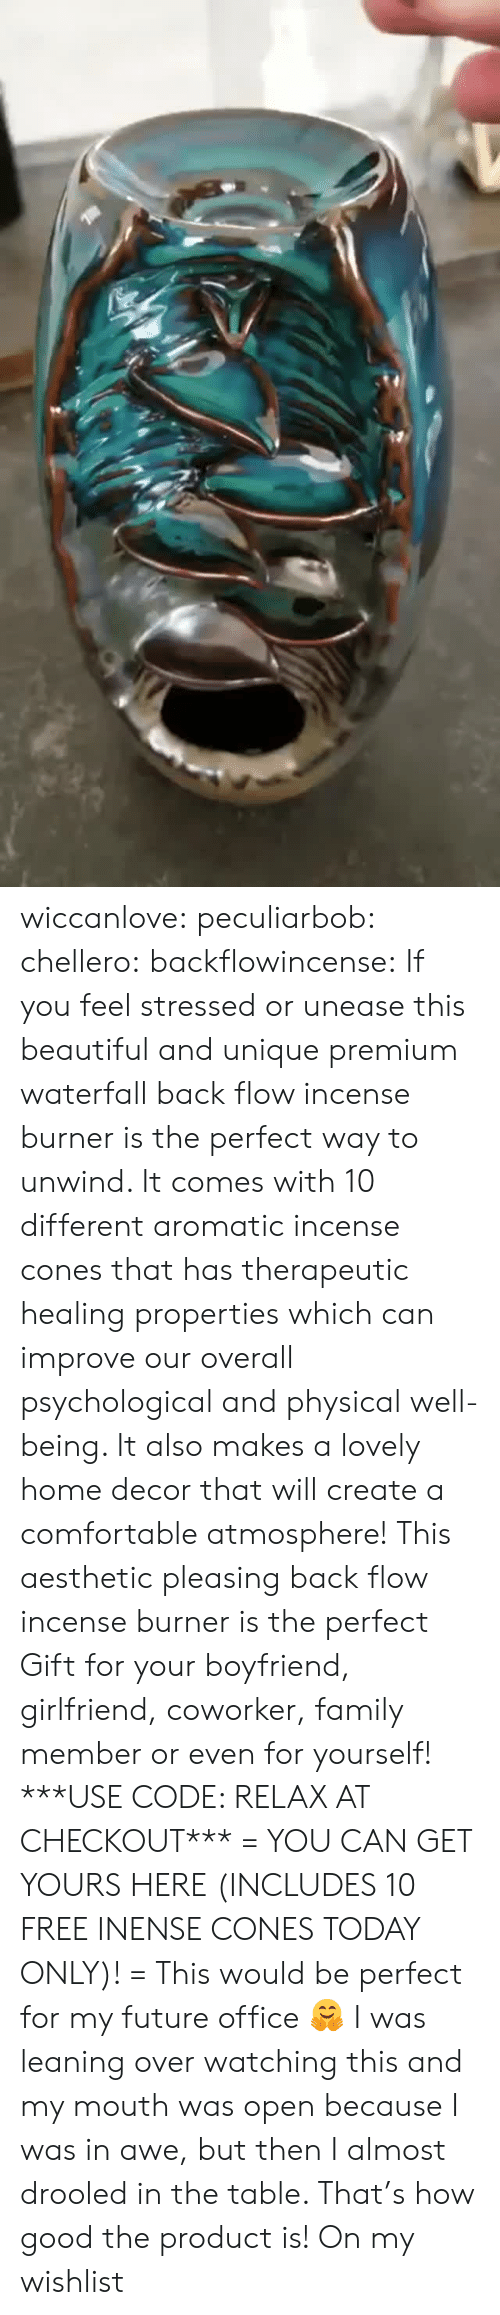 Leaning: wiccanlove:  peculiarbob: chellero:   backflowincense:  If you feel stressed or unease this beautiful and unique premium waterfall back flow incense burner is the perfect way to unwind. It comes with 10 different aromatic incense cones that has therapeutic healing properties which can improve our overall psychological and physical well-being. It also makes a lovely home decor that will create a comfortable atmosphere! This aesthetic pleasing back flow incense burner is the perfect Gift for your boyfriend, girlfriend, coworker, family member or even for yourself! ***USE CODE: RELAX AT CHECKOUT*** = YOU CAN GET YOURS HERE (INCLUDES 10 FREE INENSE CONES TODAY ONLY)! =   This would be perfect for my future office 🤗   I was leaning over watching this and my mouth was open because I was in awe, but then I almost drooled in the table. That's how good the product is!   On my wishlist